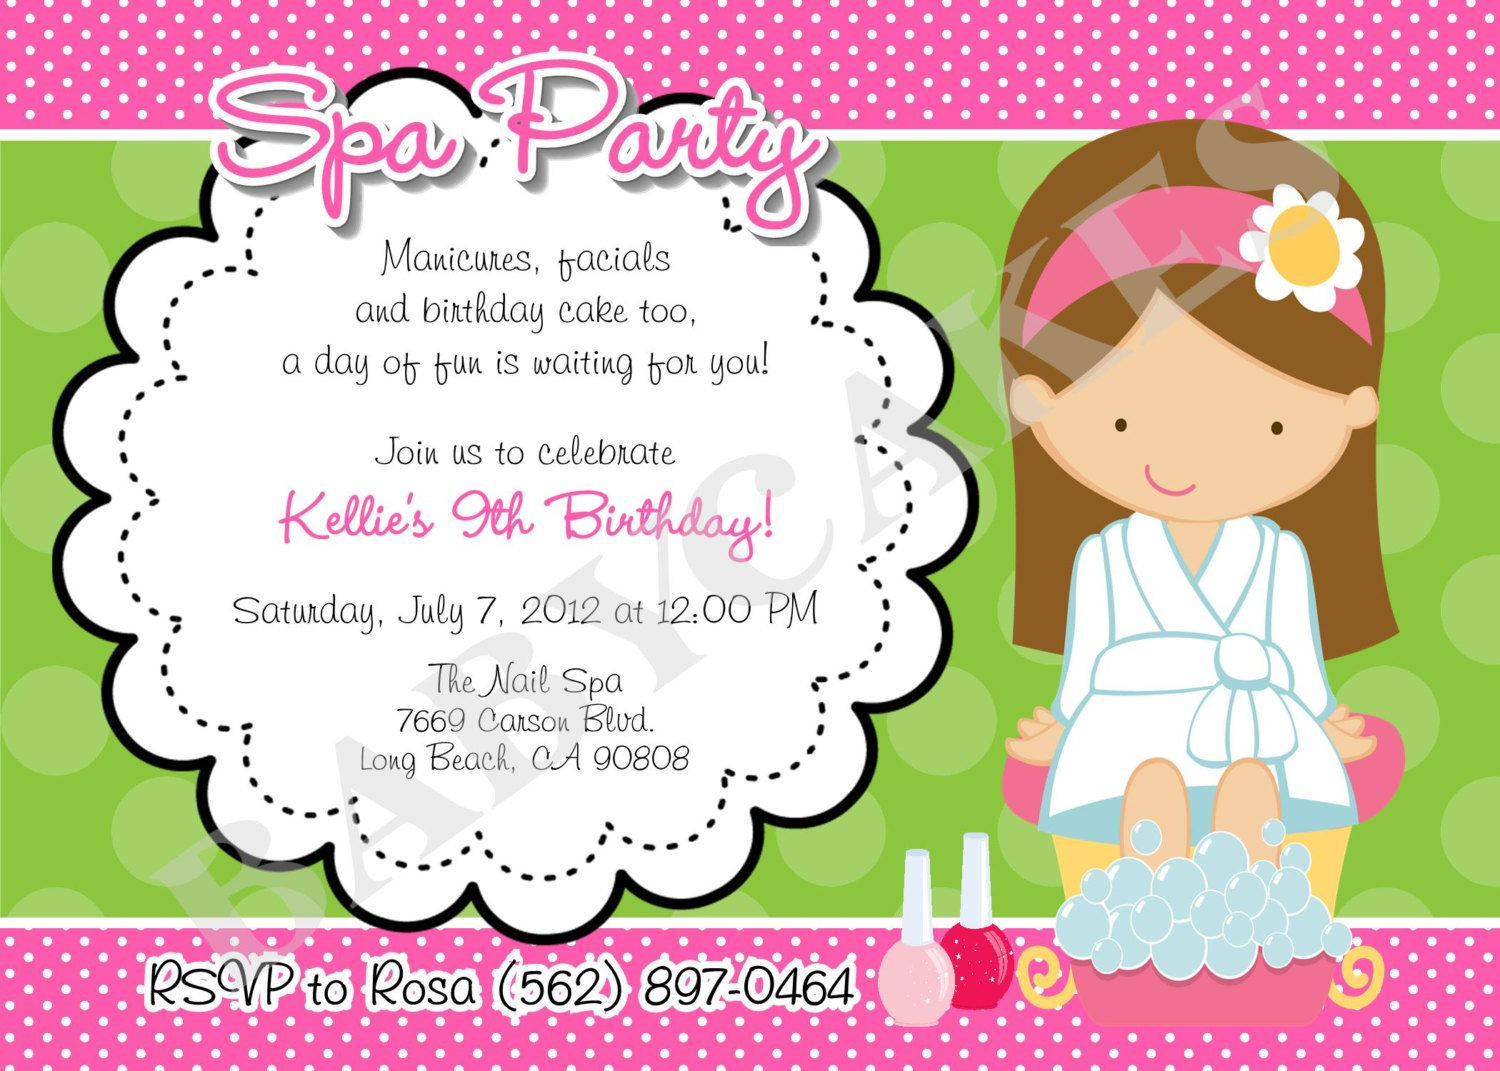 Birthday invitations exciting spa party invitation design idea with birthday invitations exciting spa party invitation design idea with beautiful girl green white background and pink filmwisefo Gallery